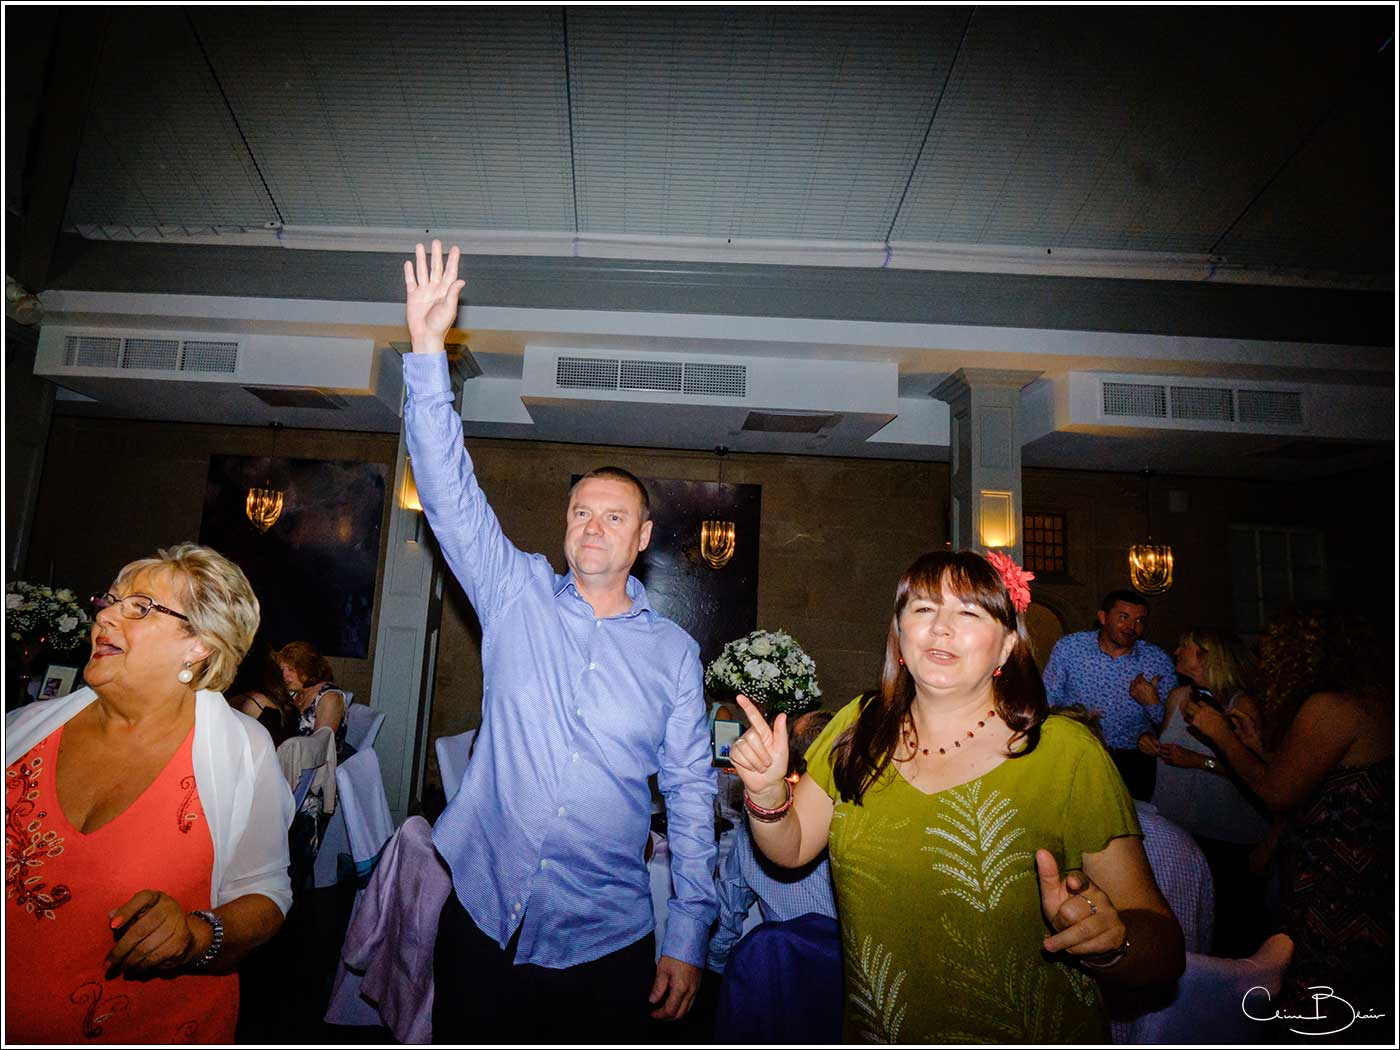 three guests on the dance floor-by Hampton manor wedding photographer Clive Blair Photography